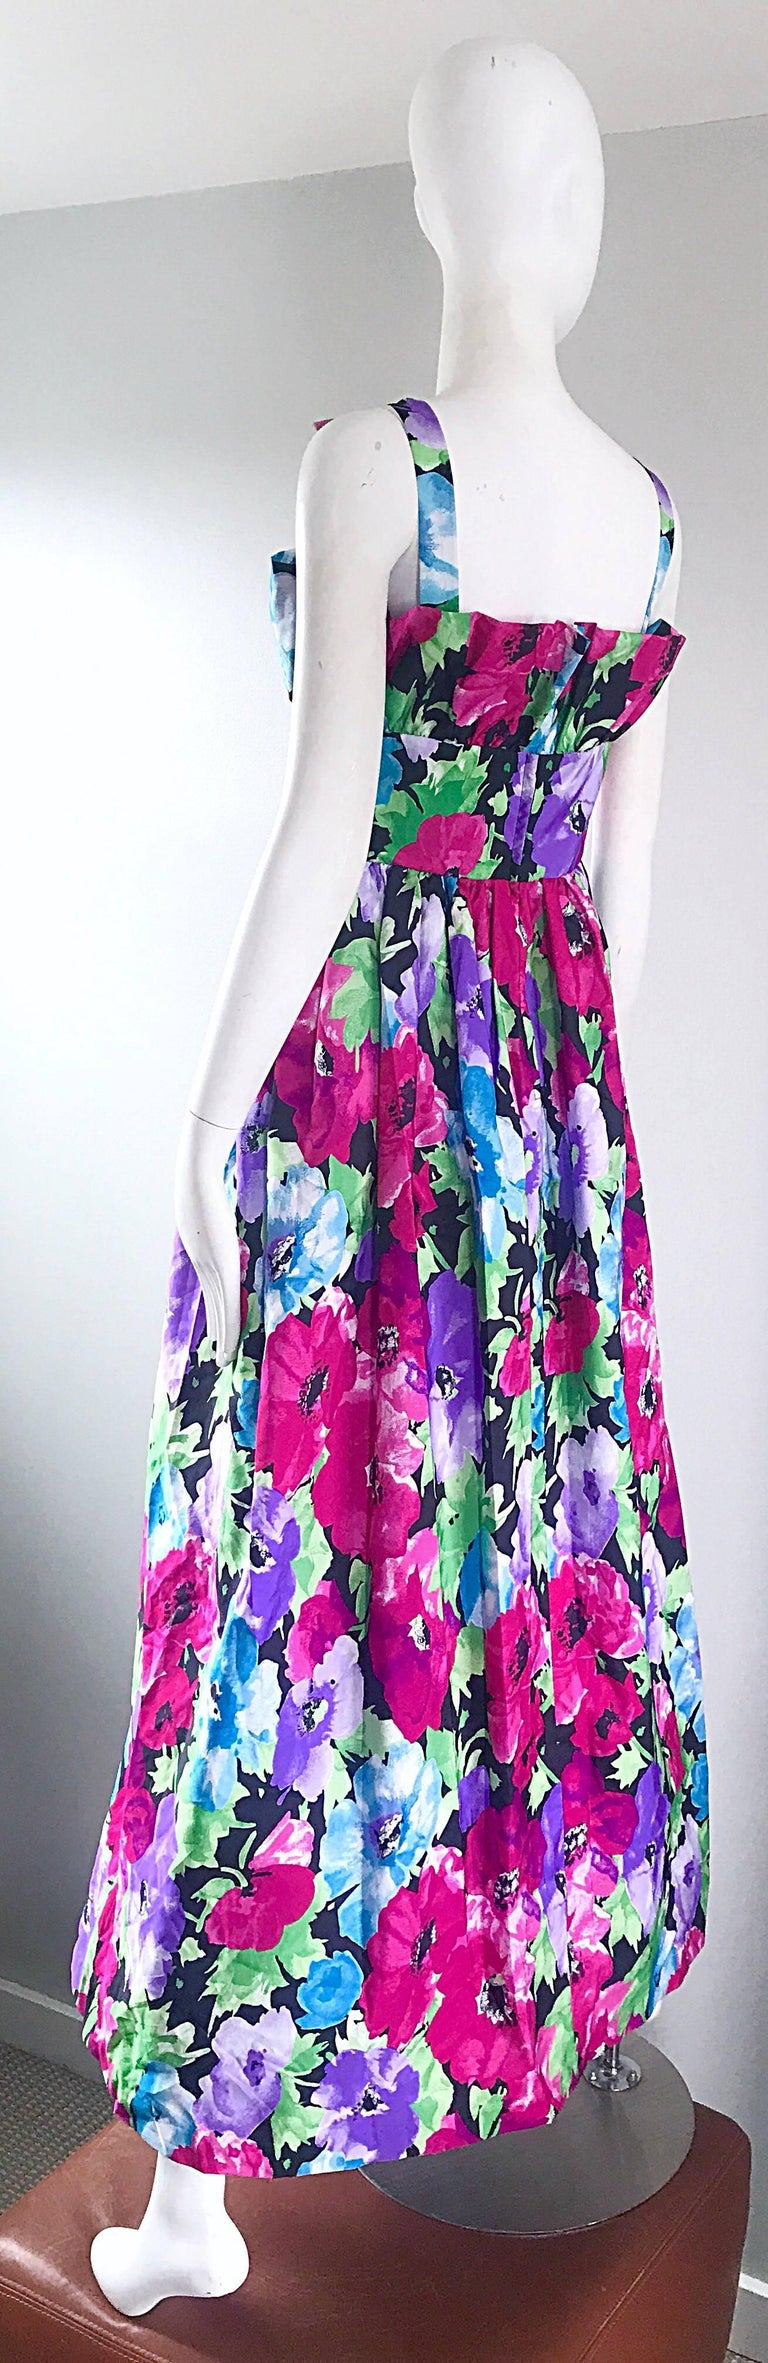 Women's Amazing Vintage Victor Costa Size 16 Tropical Hawaiian Avant Garde Maxi Dress  For Sale